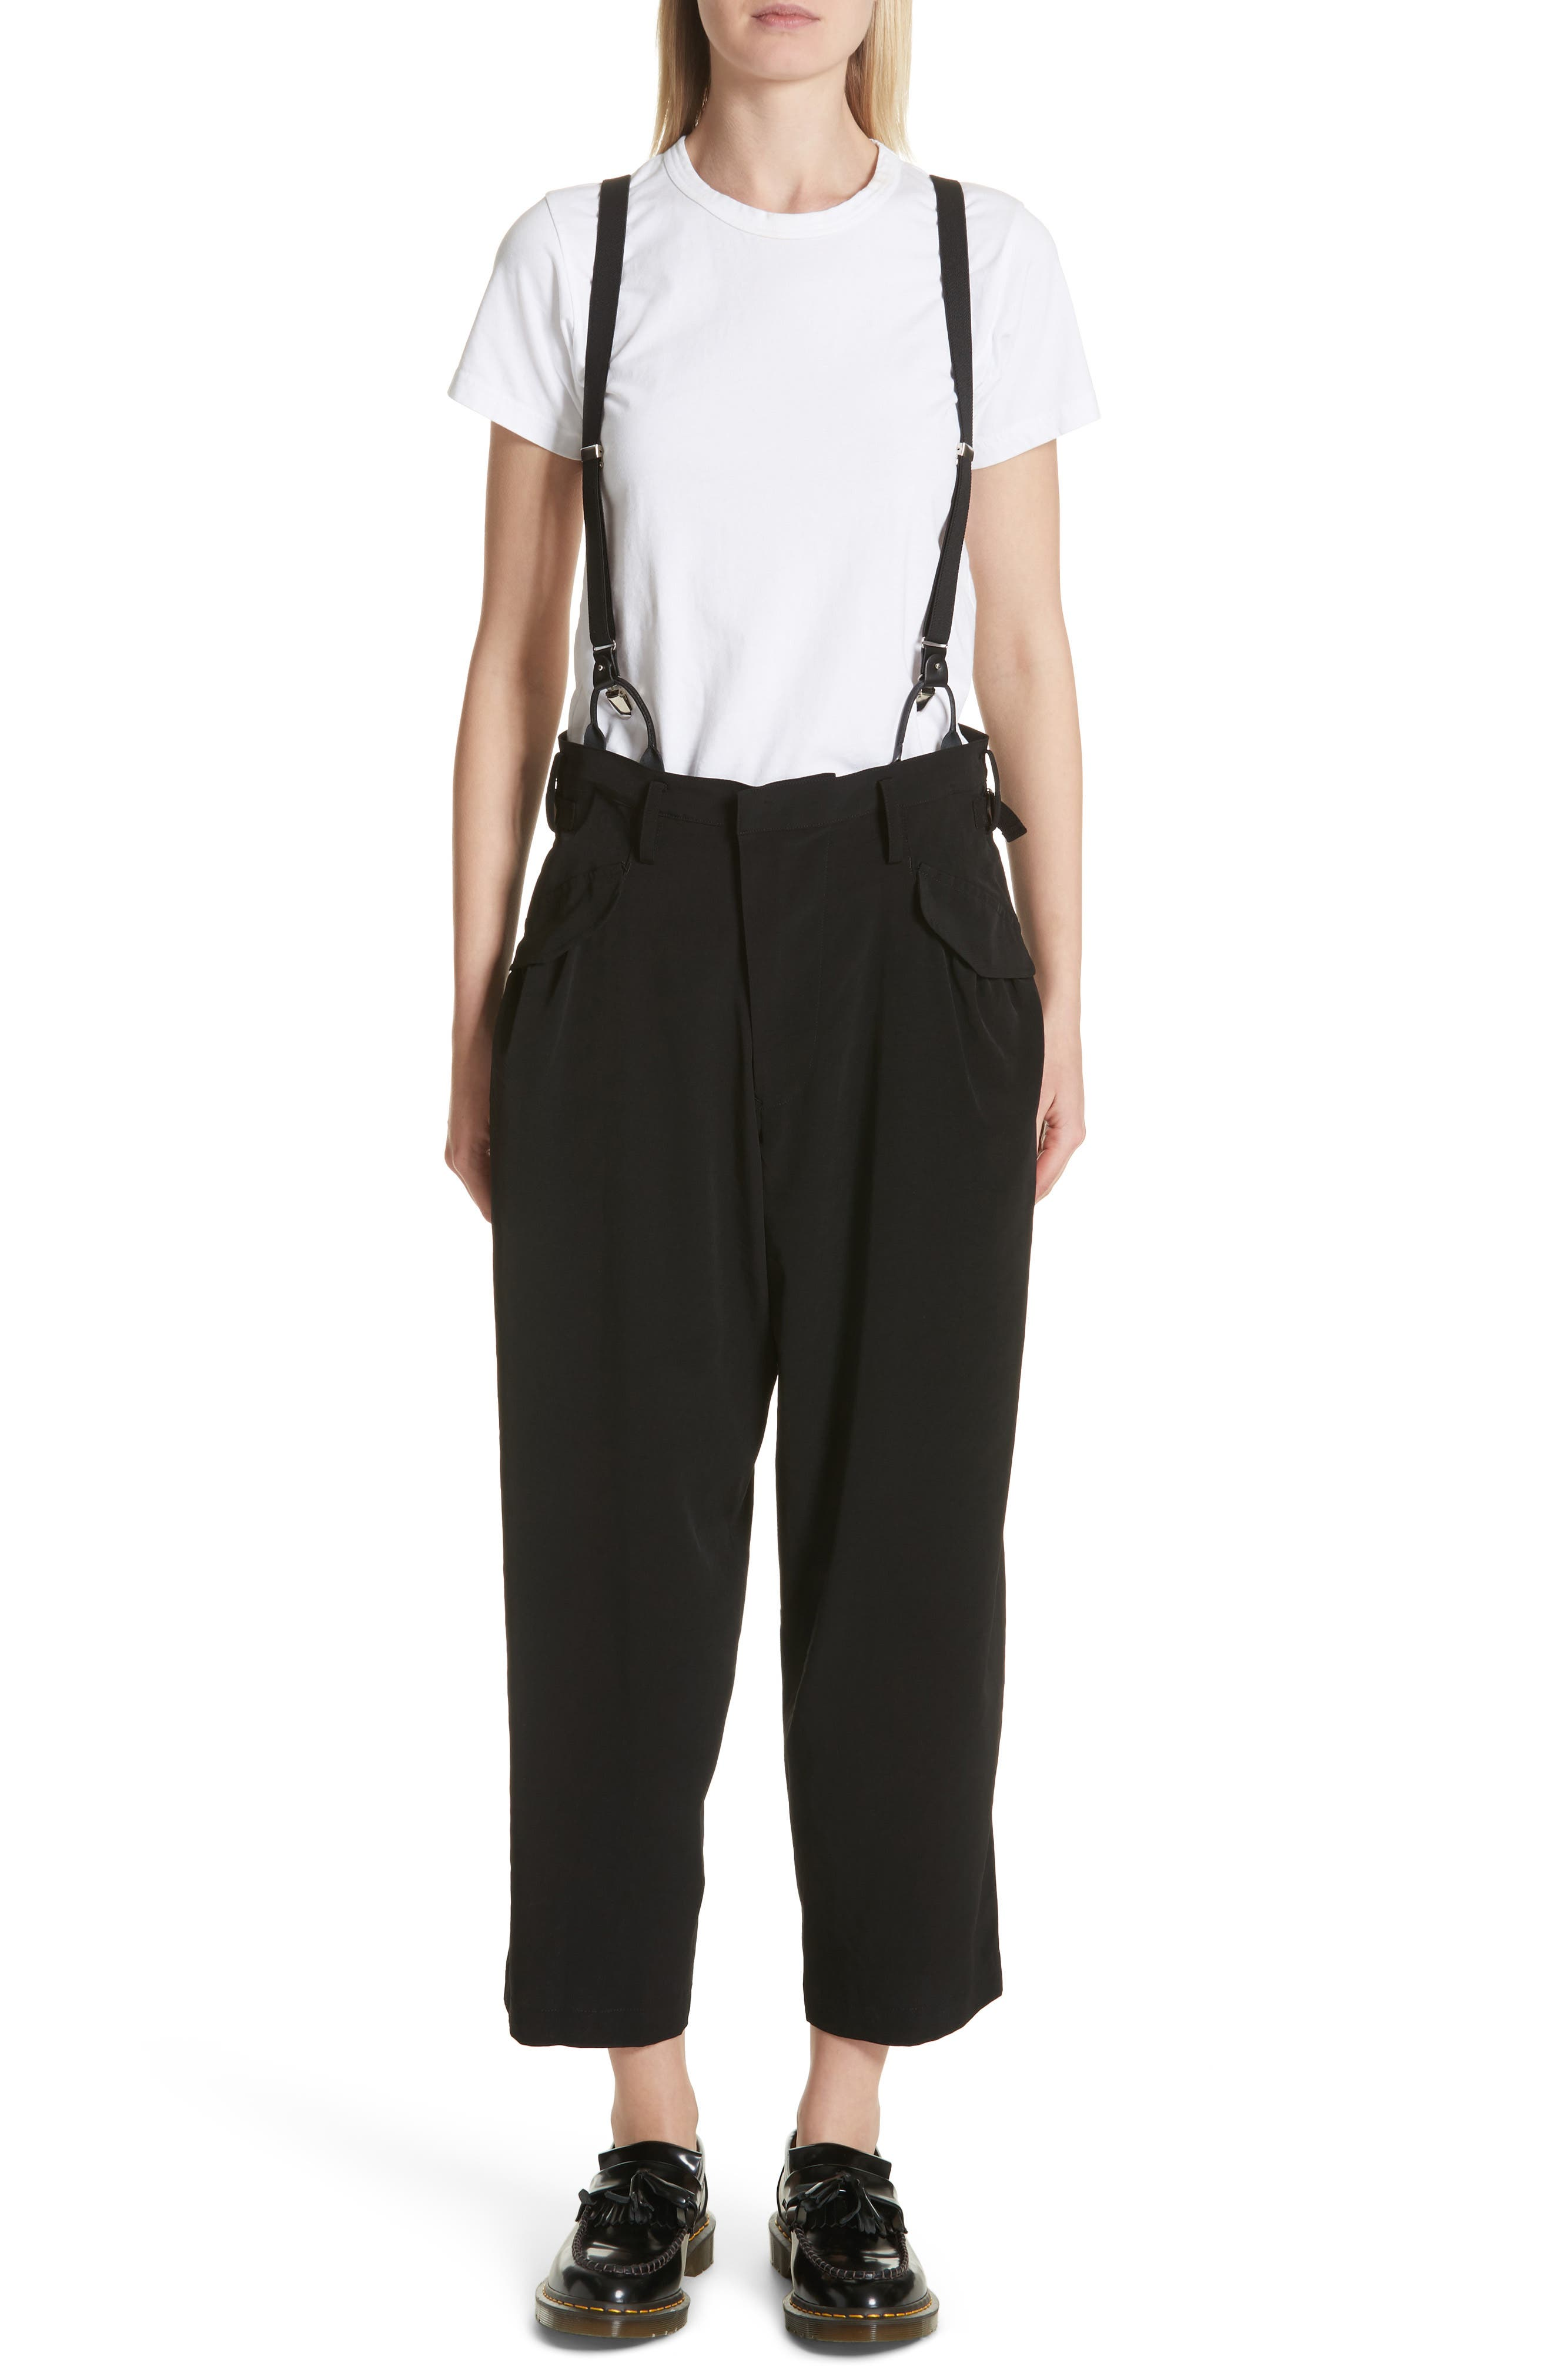 Pants with Suspenders,                             Main thumbnail 1, color,                             Black